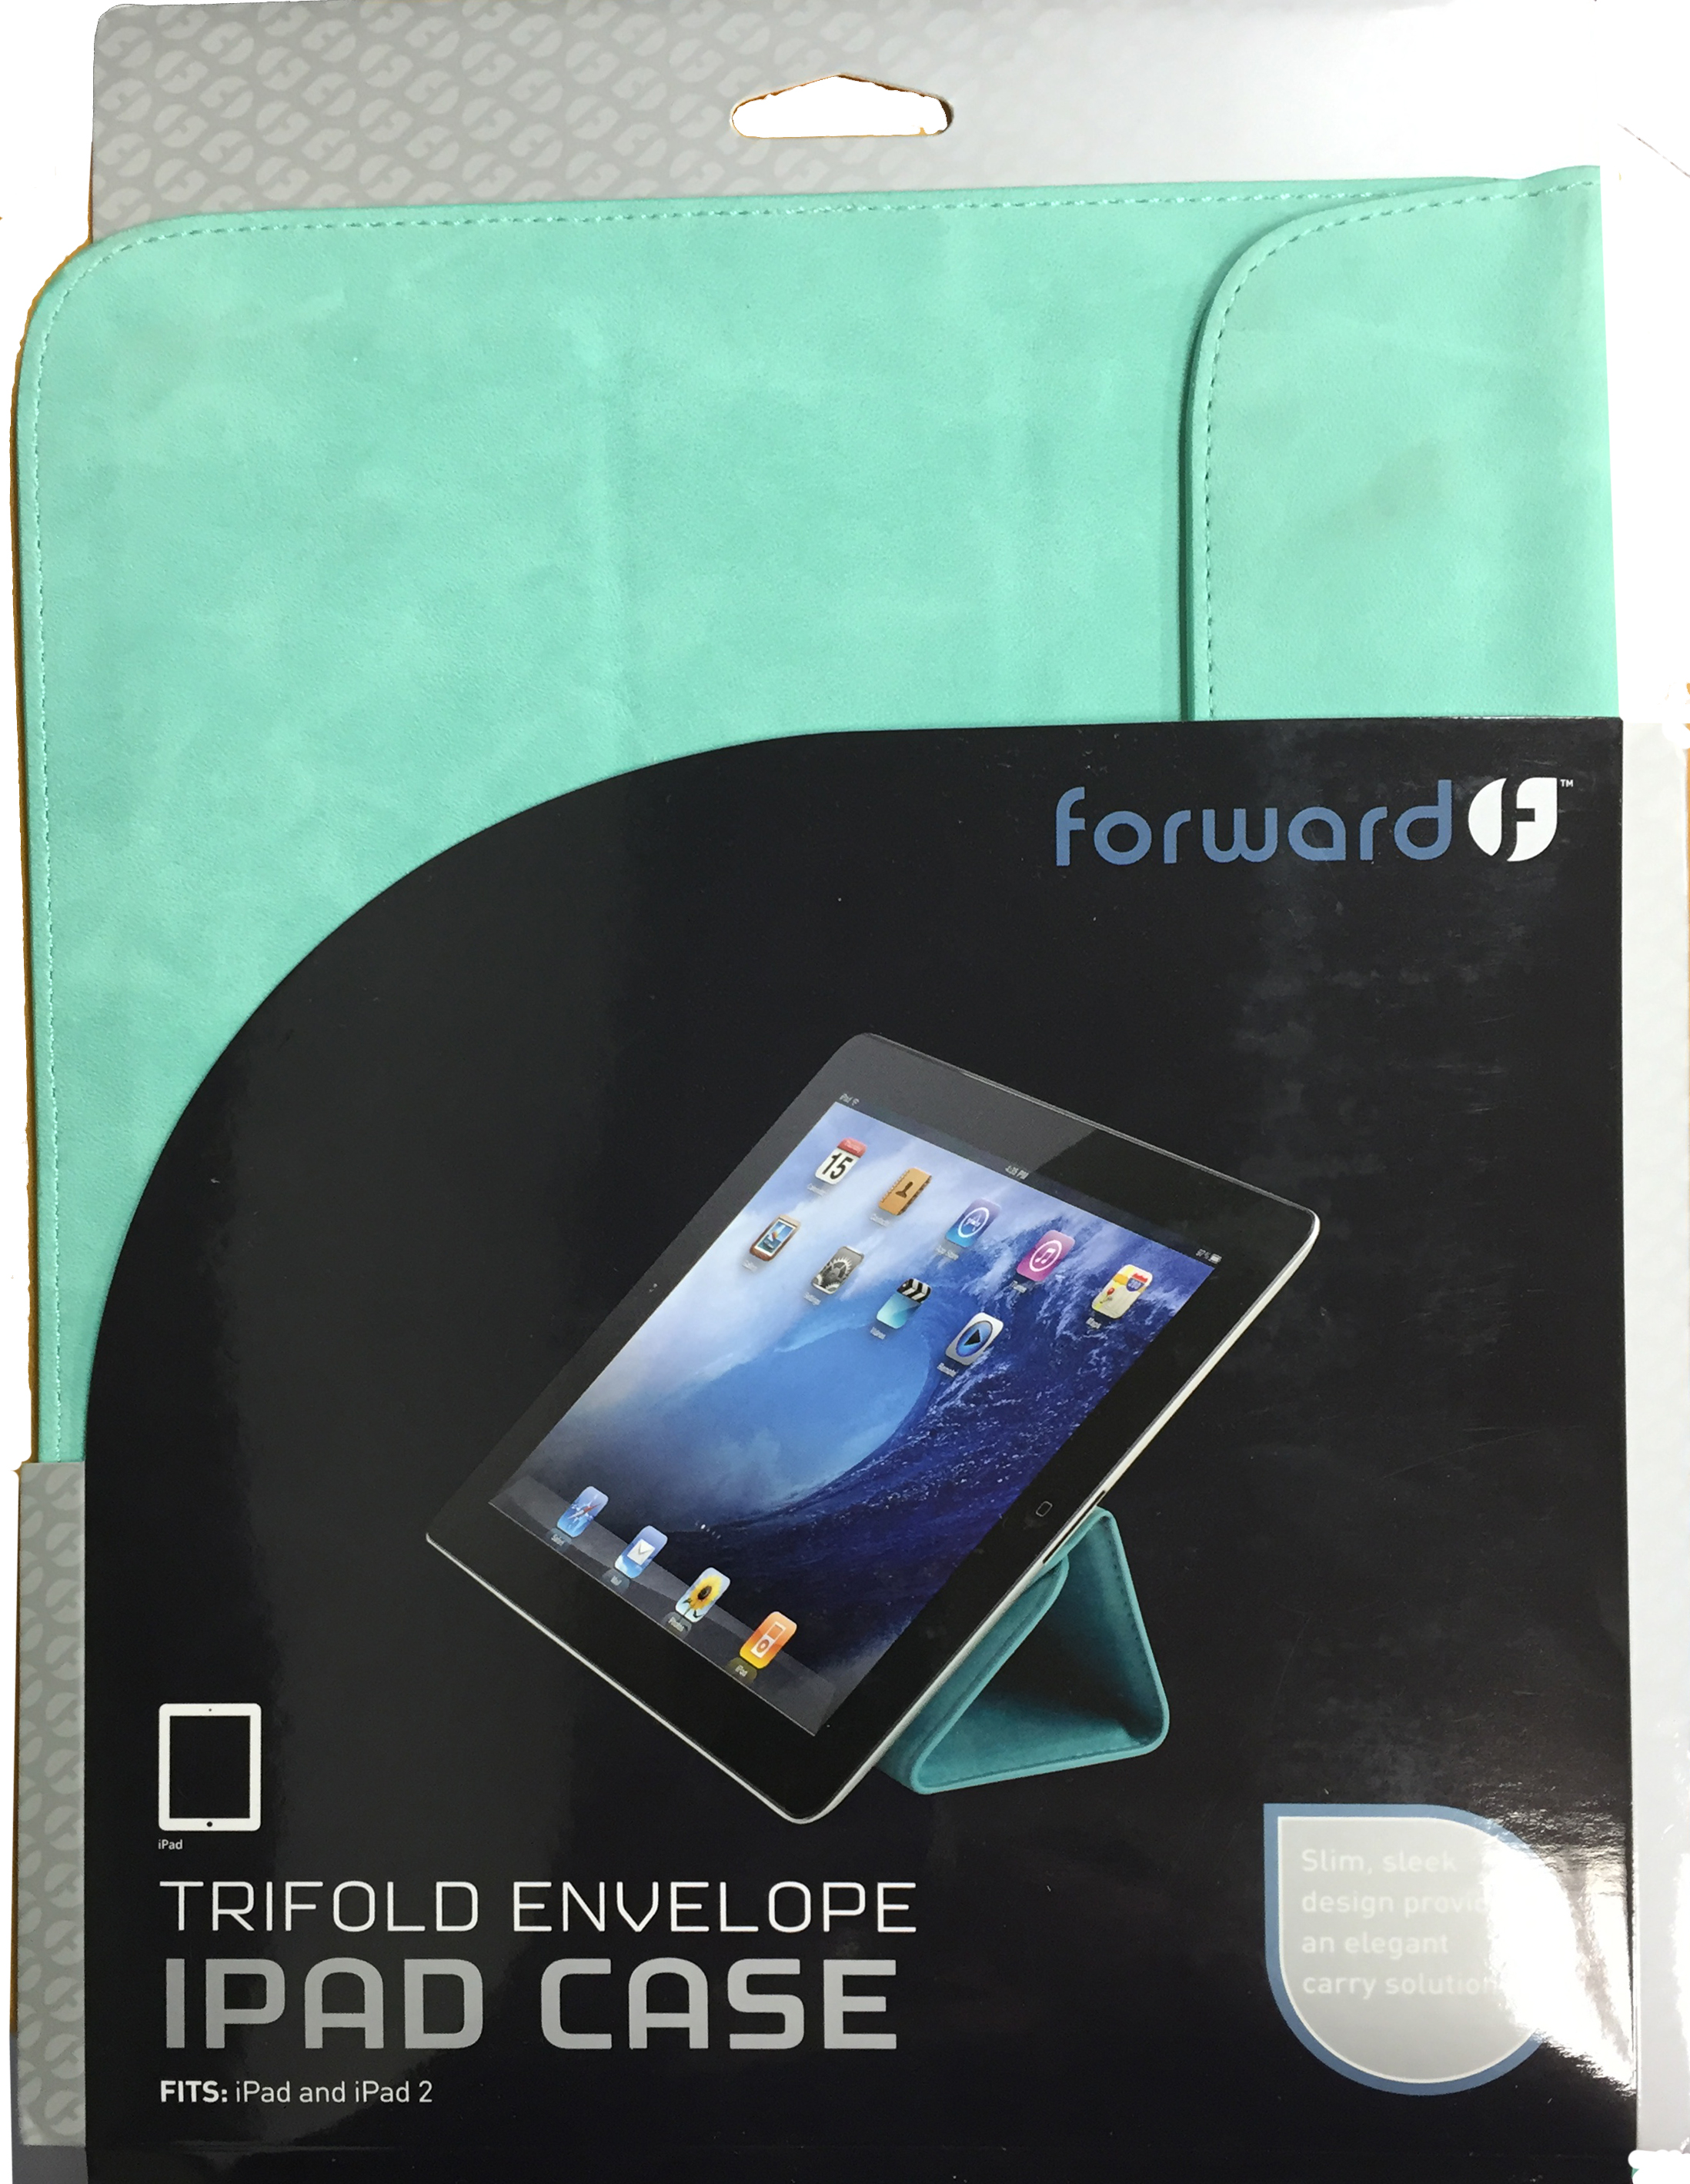 Forward Trifold Envelope iPad Turquoise FCTSL05TQ Case Cover Folding Folio Green